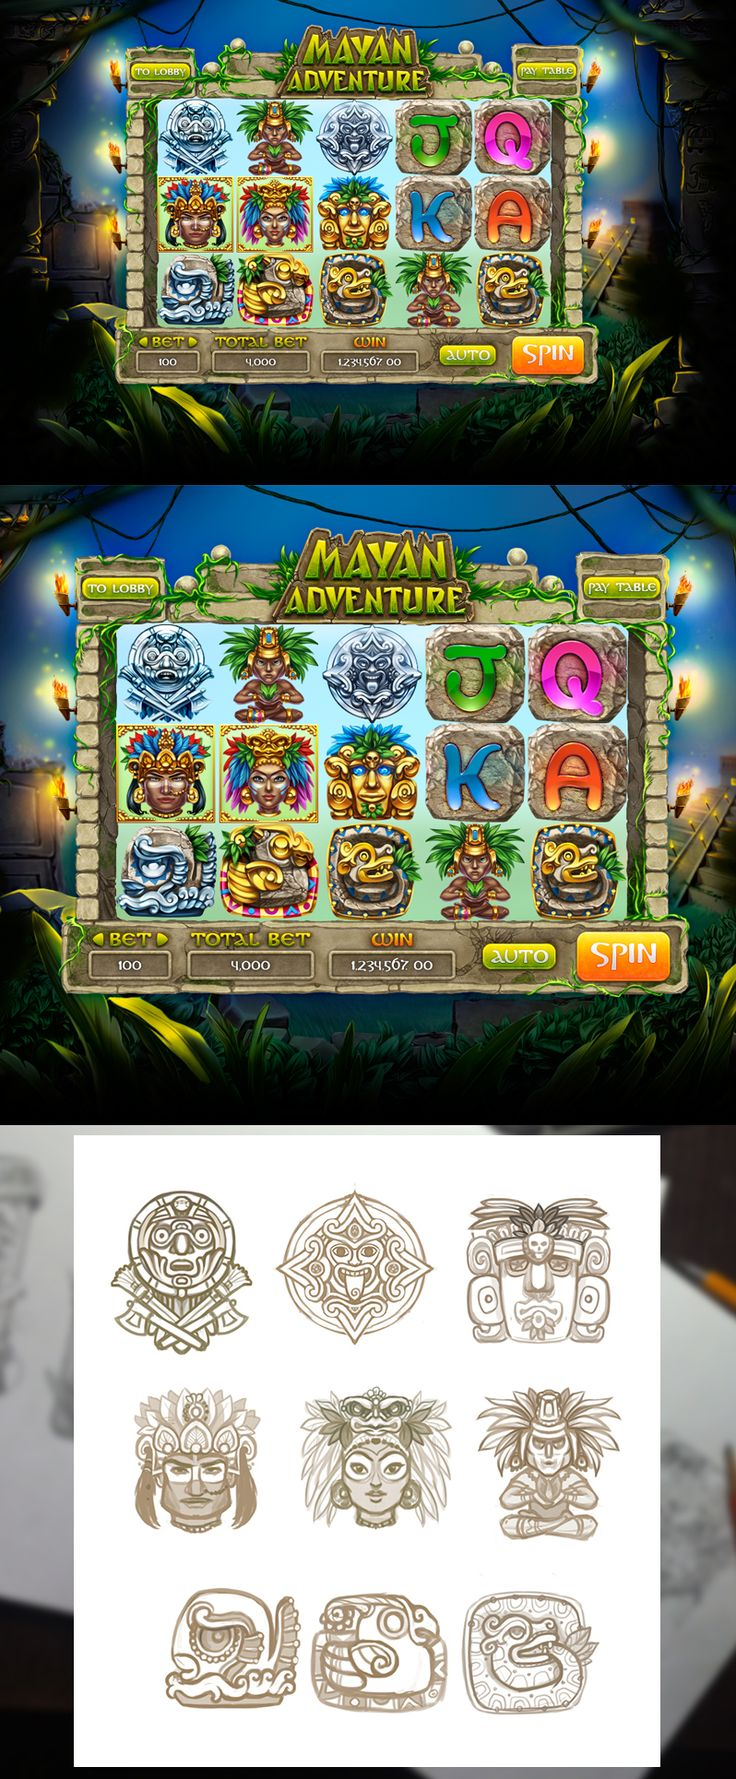 "Graphic design of symbols, icons, objects & interface for the game slot-machine ""Mayan Adventure"" All items are developed in the ancient style of Maya. Enjoy! http://slotopaint.com"